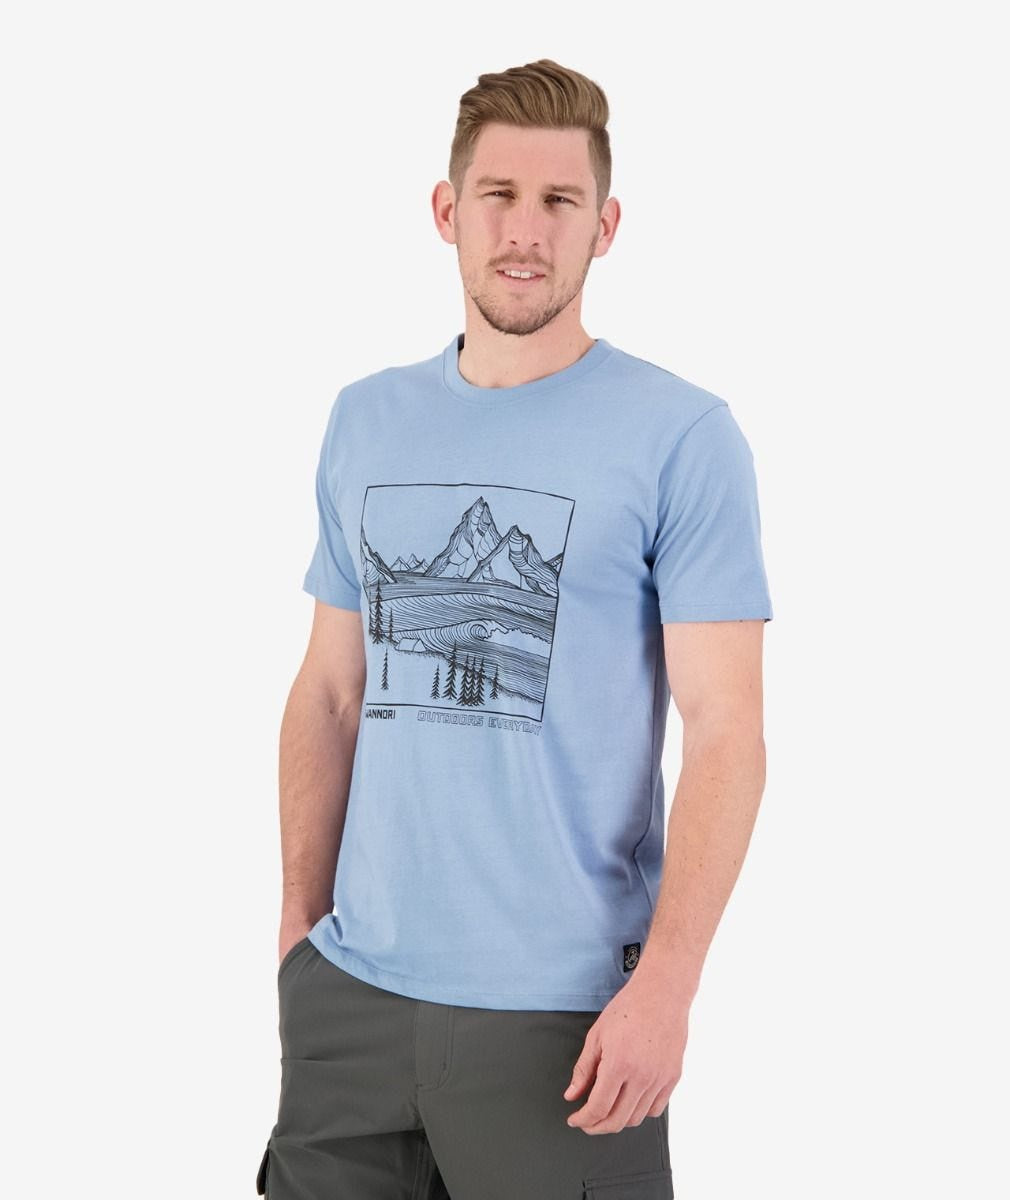 Mens Fiordland Print Tee (Light Blue/Black)